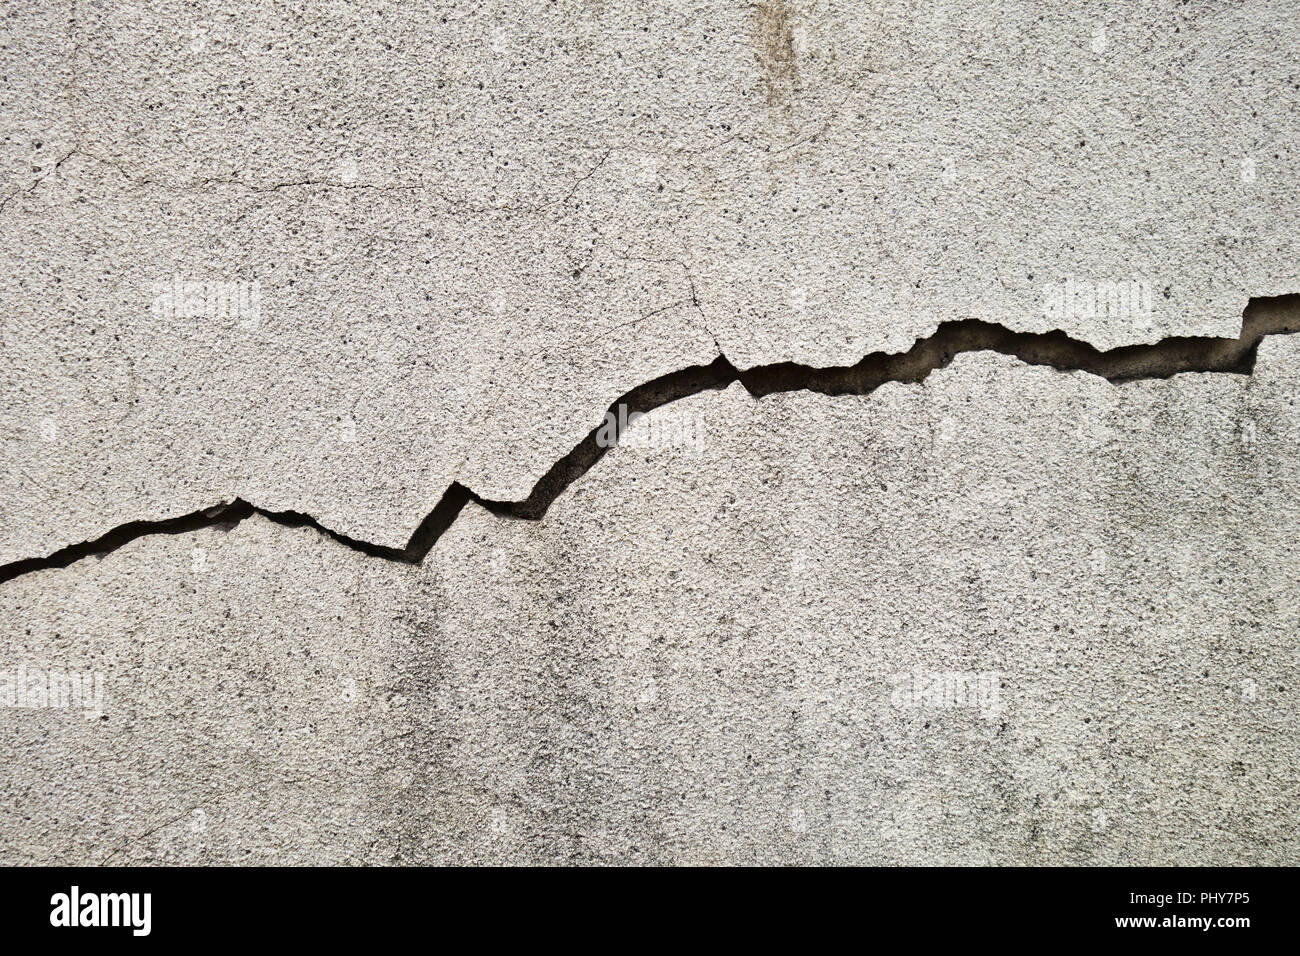 crack in a concrete wall - Stock Image